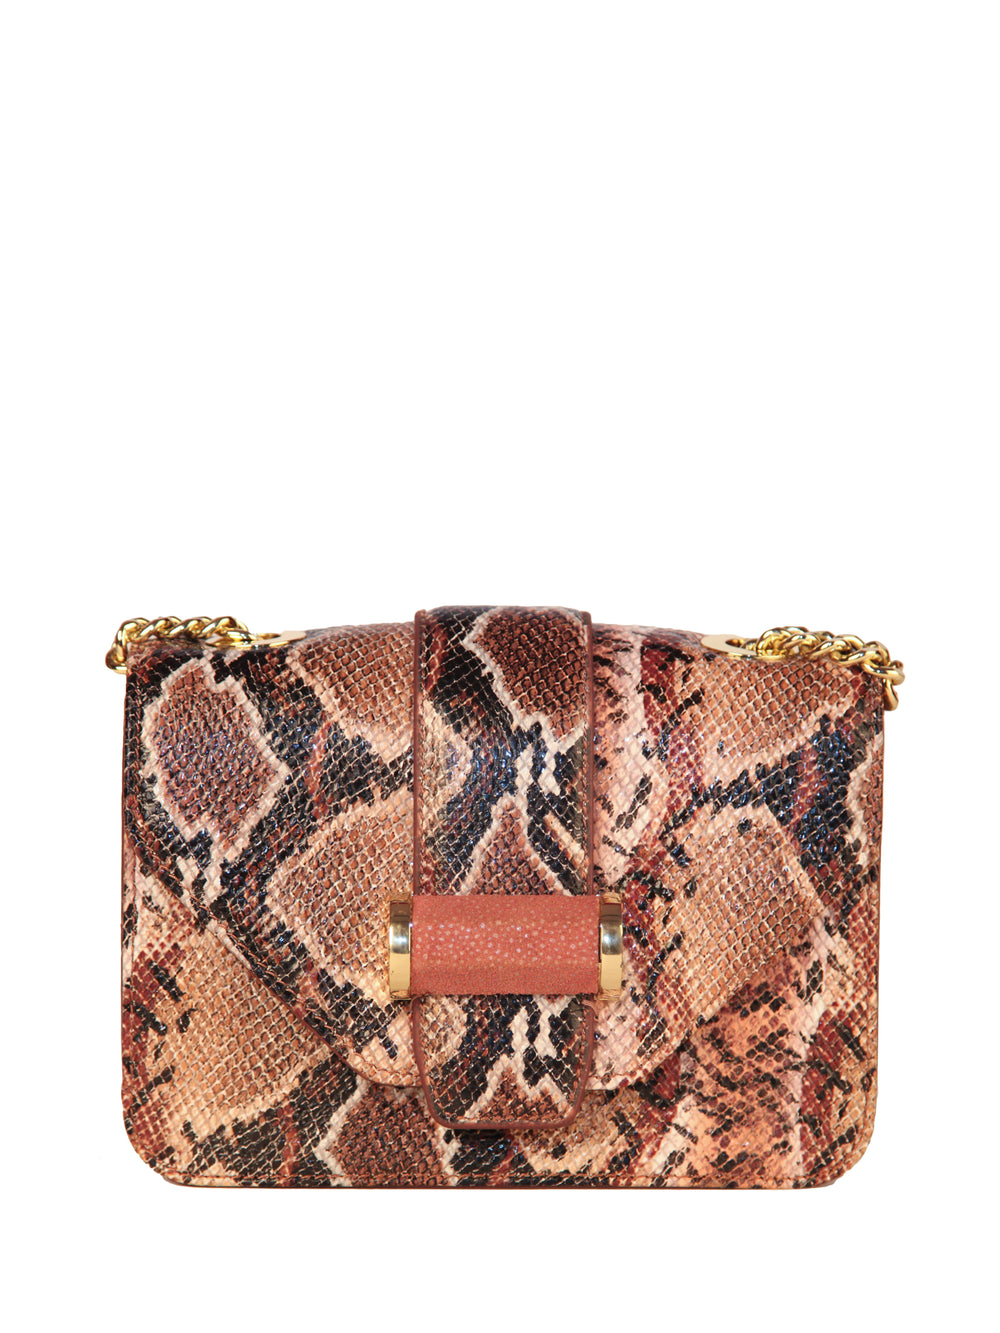 Snake-Embossed Classic Shoulder Bag, IVANKA - elilhaam.com